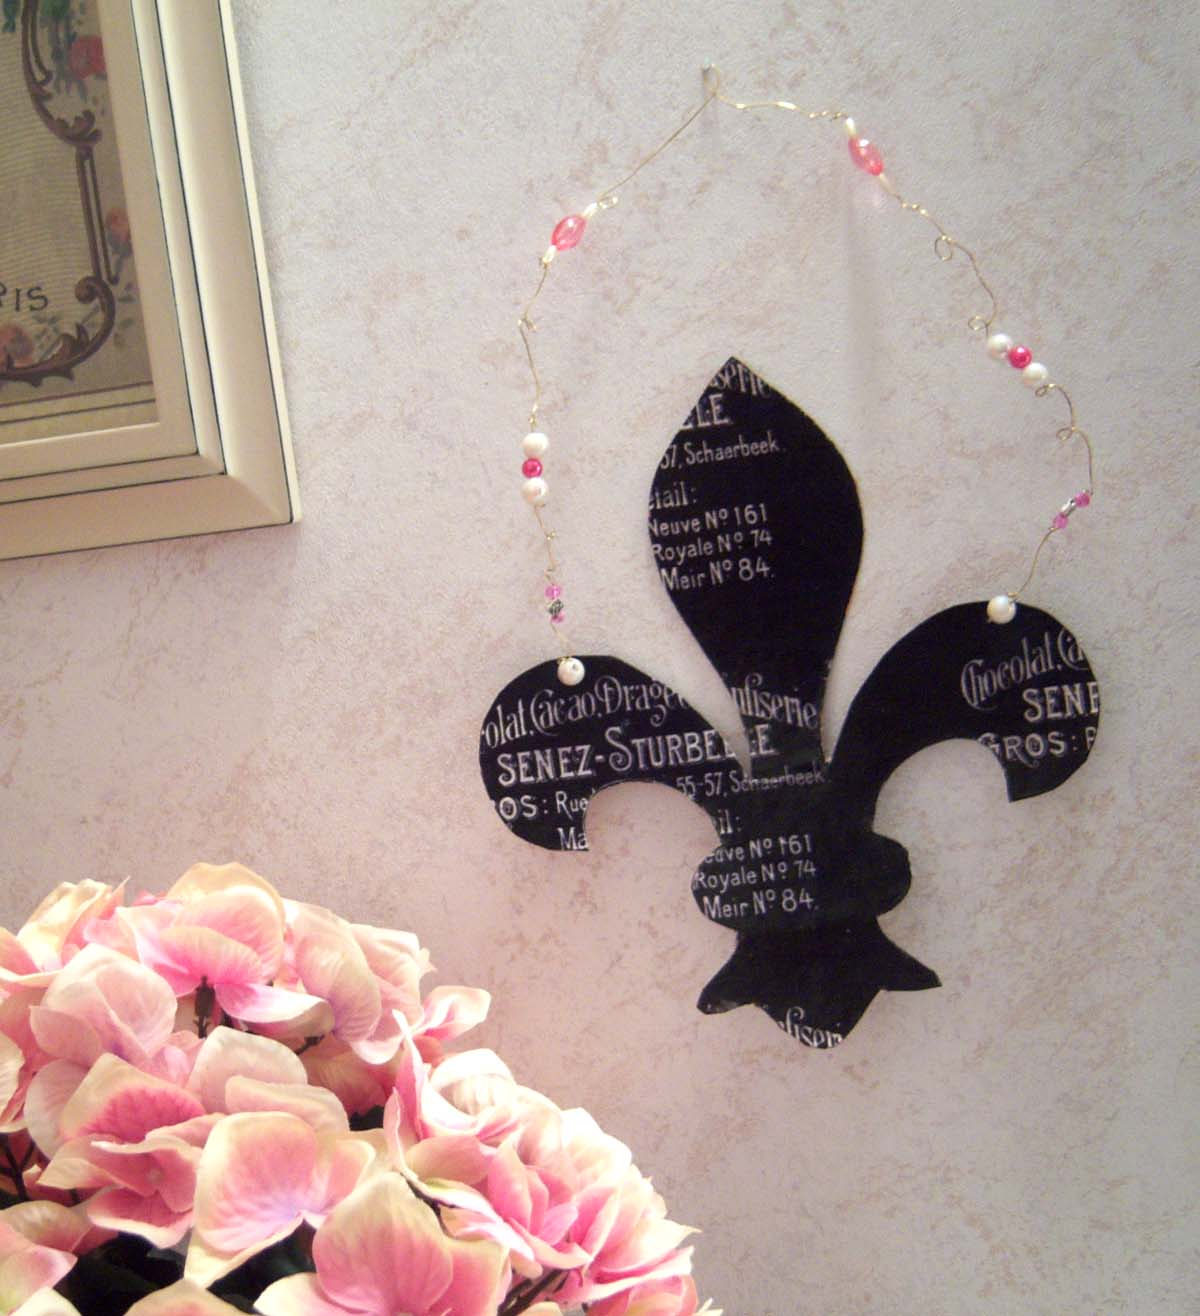 Shoregirl's Creations: Paris Bathroom Makeover - 3 More Things